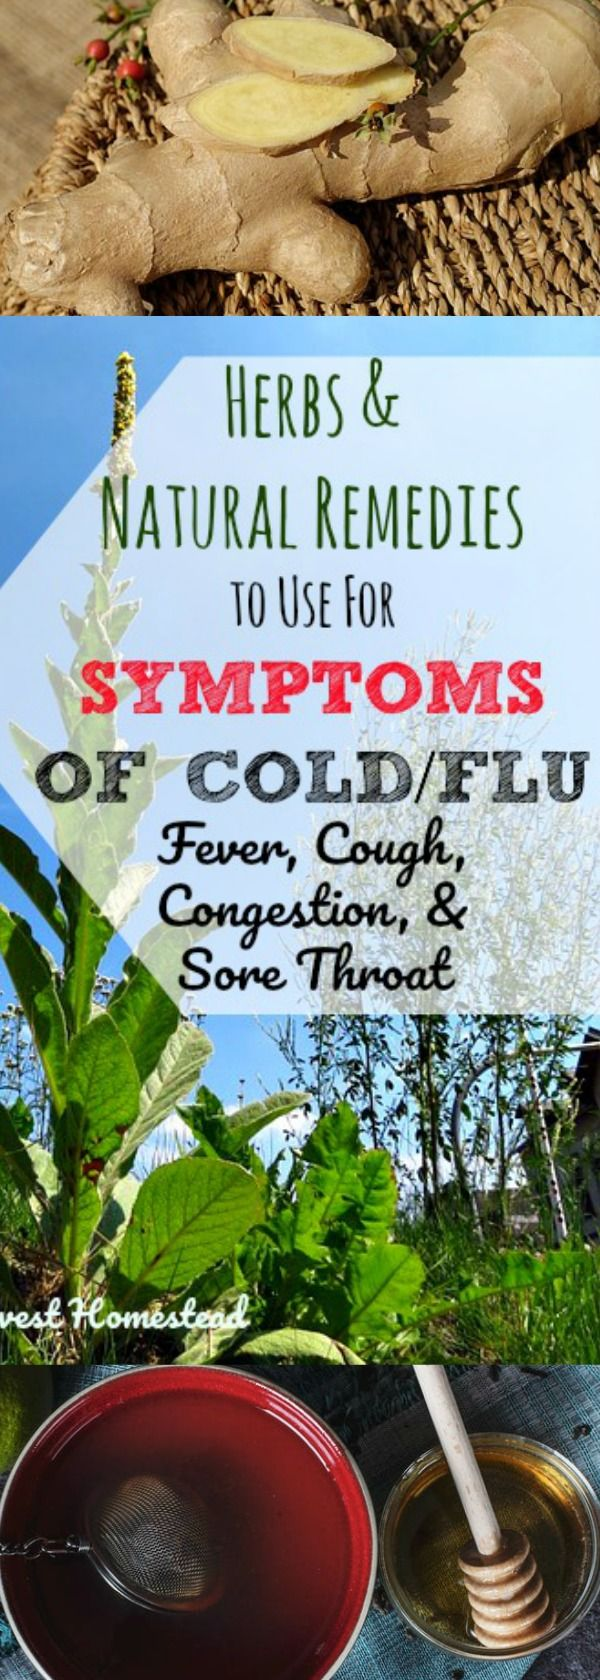 How to Make Horrible Sore Throats, Debilitating Fevers, and Other Cold & Flu Symptoms Feel Better Naturally (What Herbs are Best to Use for Sore Throat, Fever, Coughs & Congestion?)